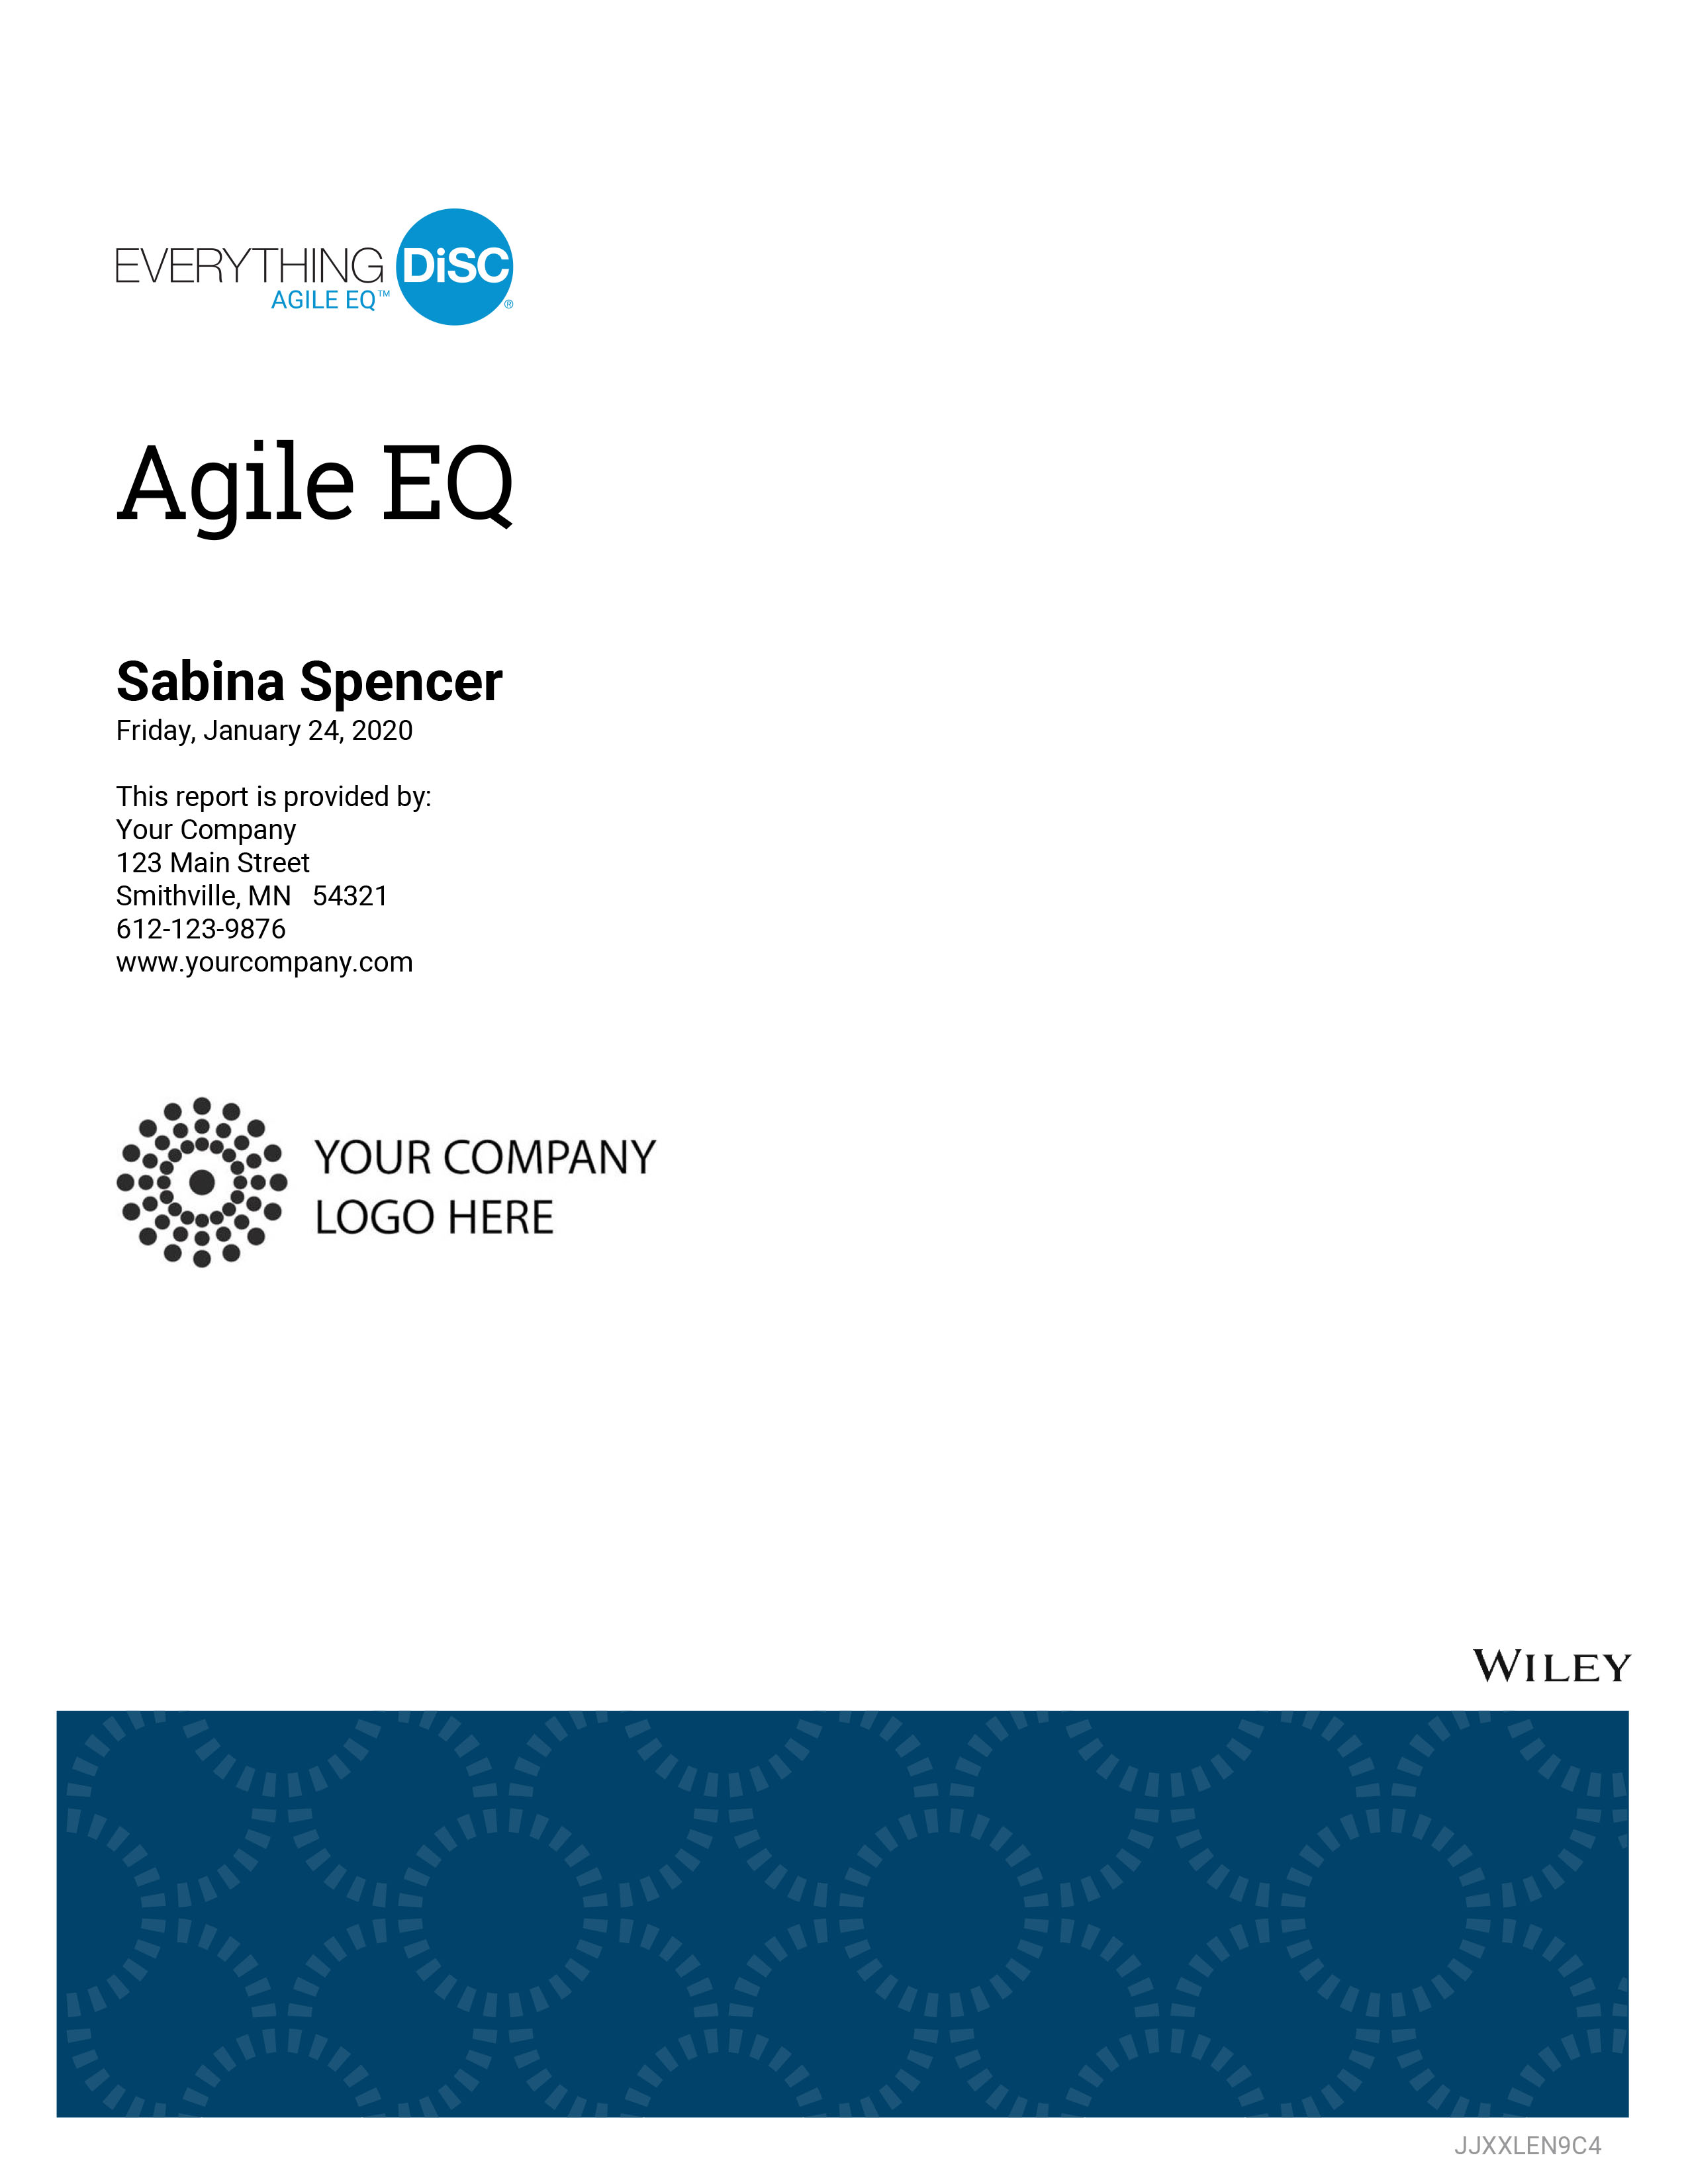 Everything DiSC Agile EQ Profile Cover